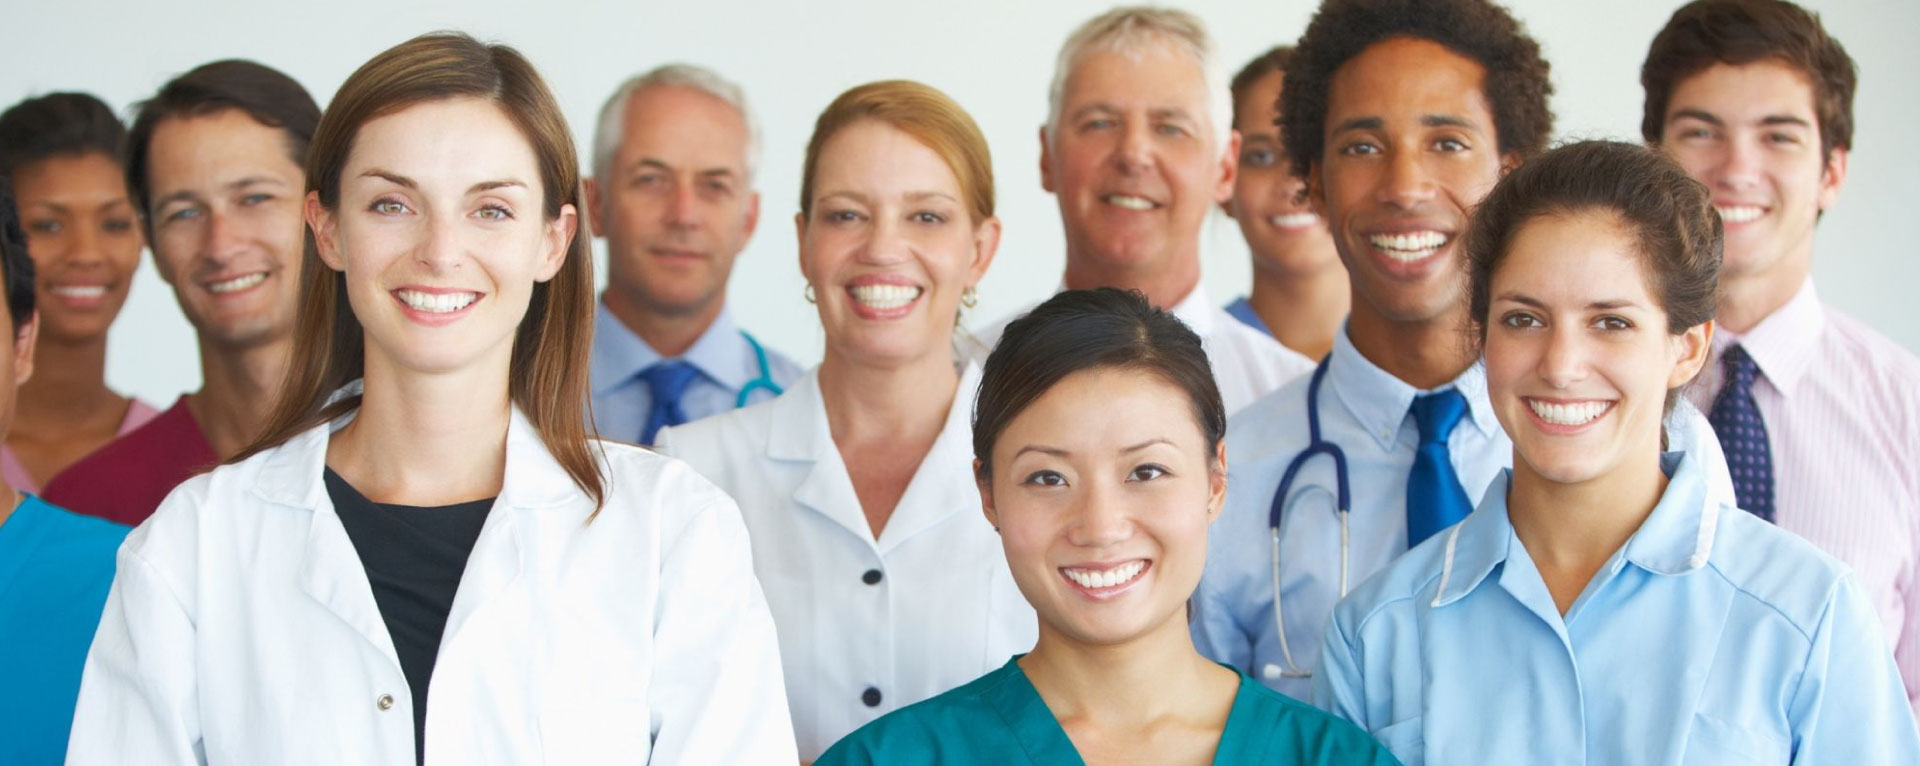 MD Services Medical Credentialing for Professionals